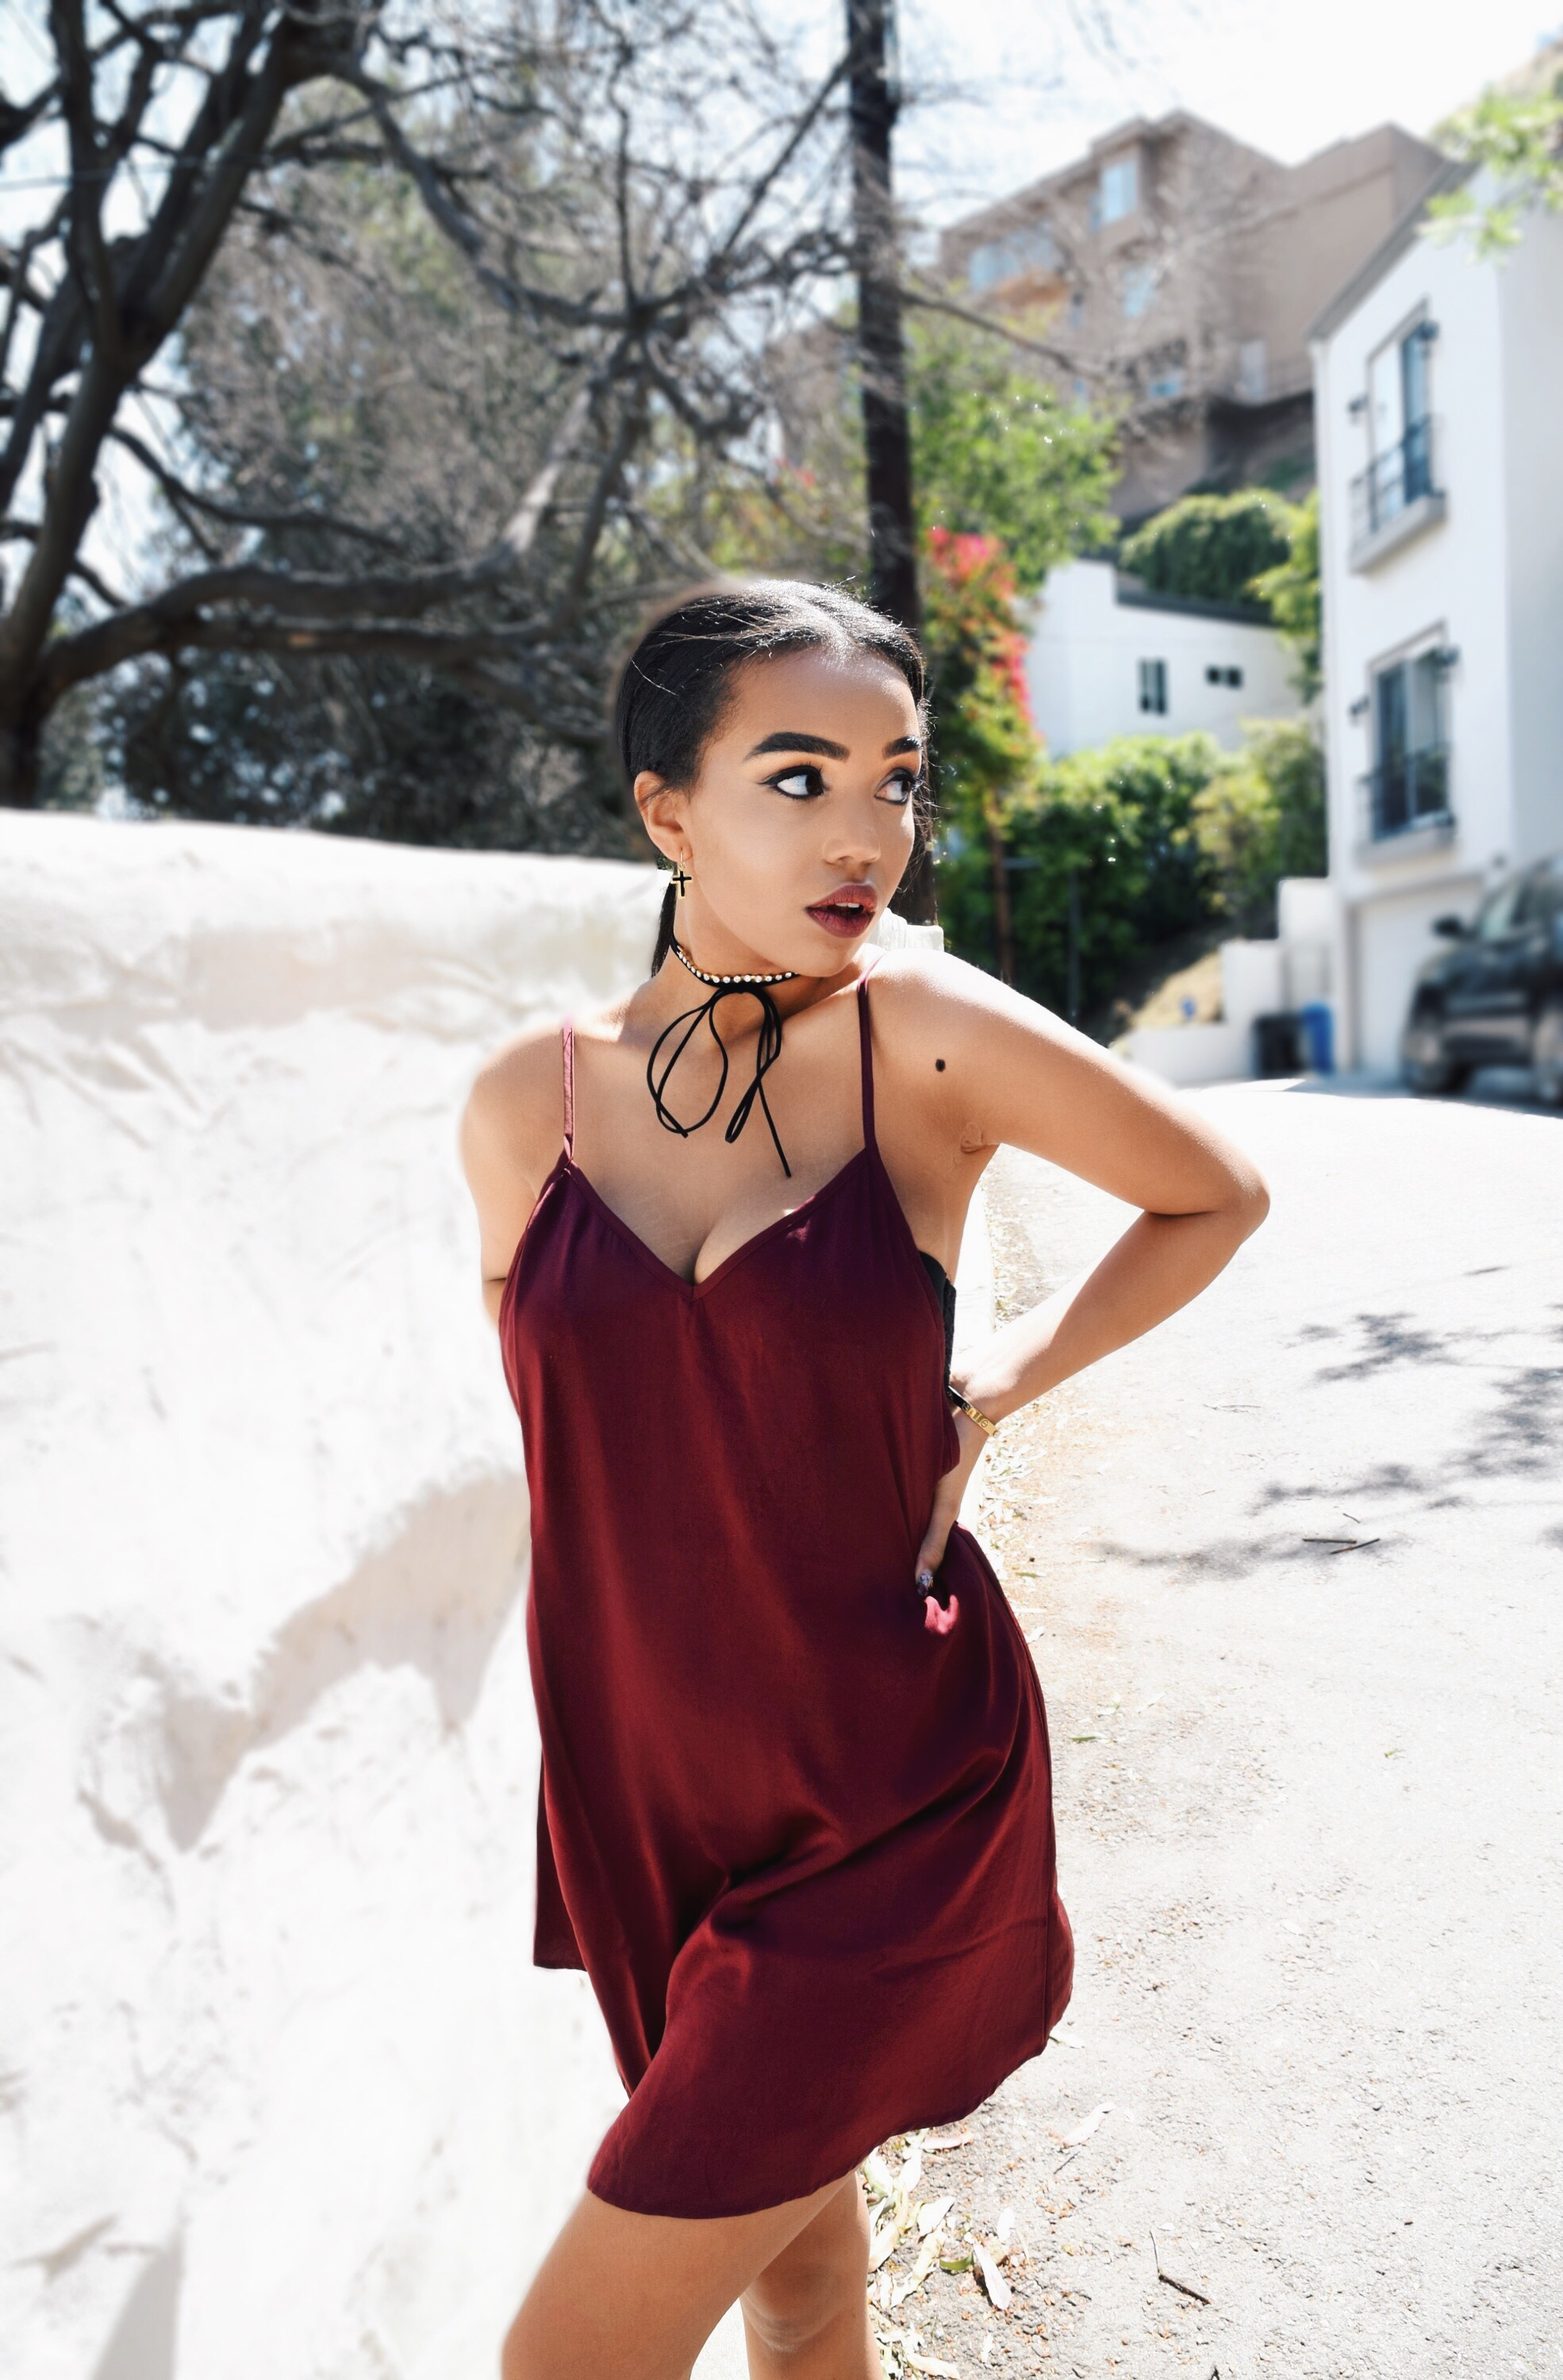 Like Fine Wine // Shop Tobi Burgundy Red Slip Dress // Spring & Summer Style Ideas // Shop Tobi Black Suede & Rhinestone Wrap Choker // Shop Tobi Black & Gold Cross Earrings // Public Desire Lace Up Gold Heeled Sandals // Los Angeles Fashion Blogger Daphne Blunt: To Style, With Love